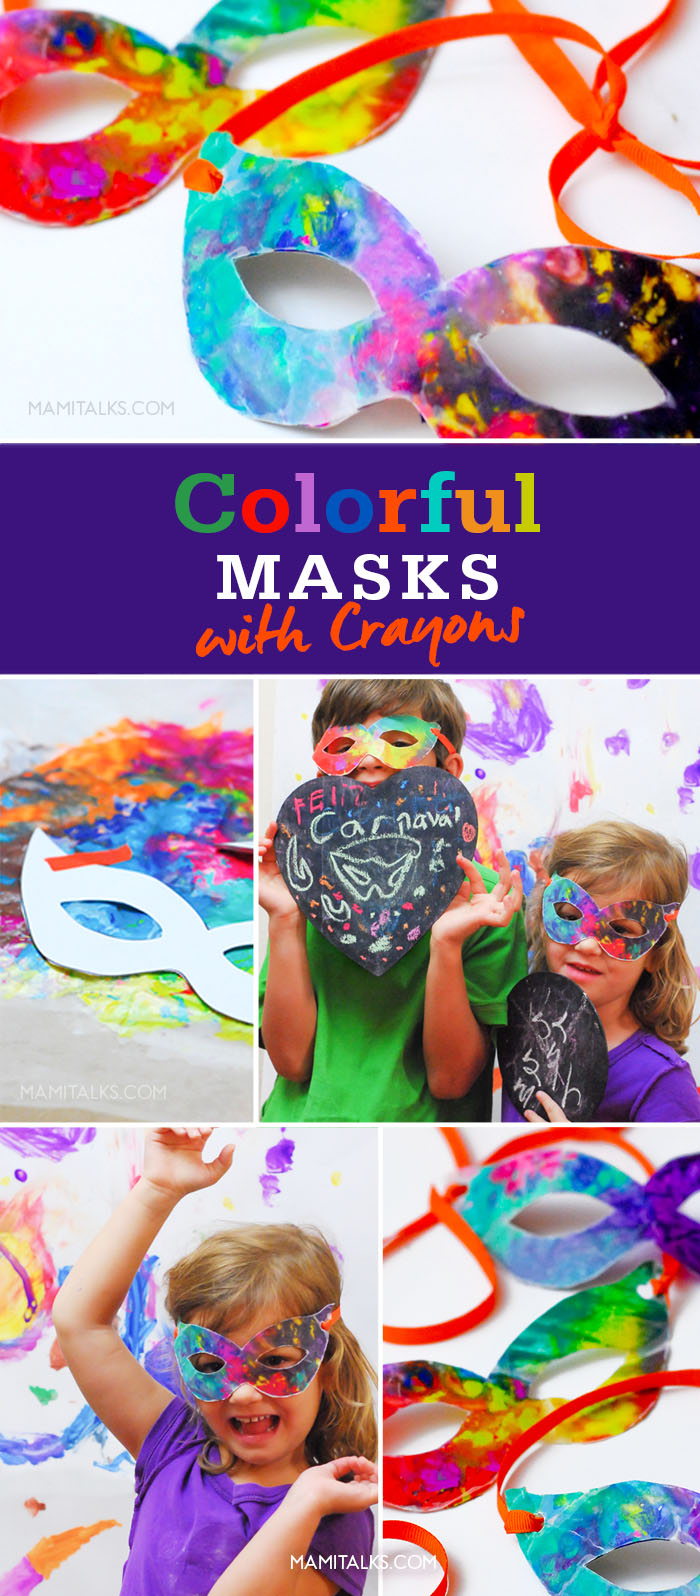 Photos of carnival masks made with crayons. -MamiTalks.com